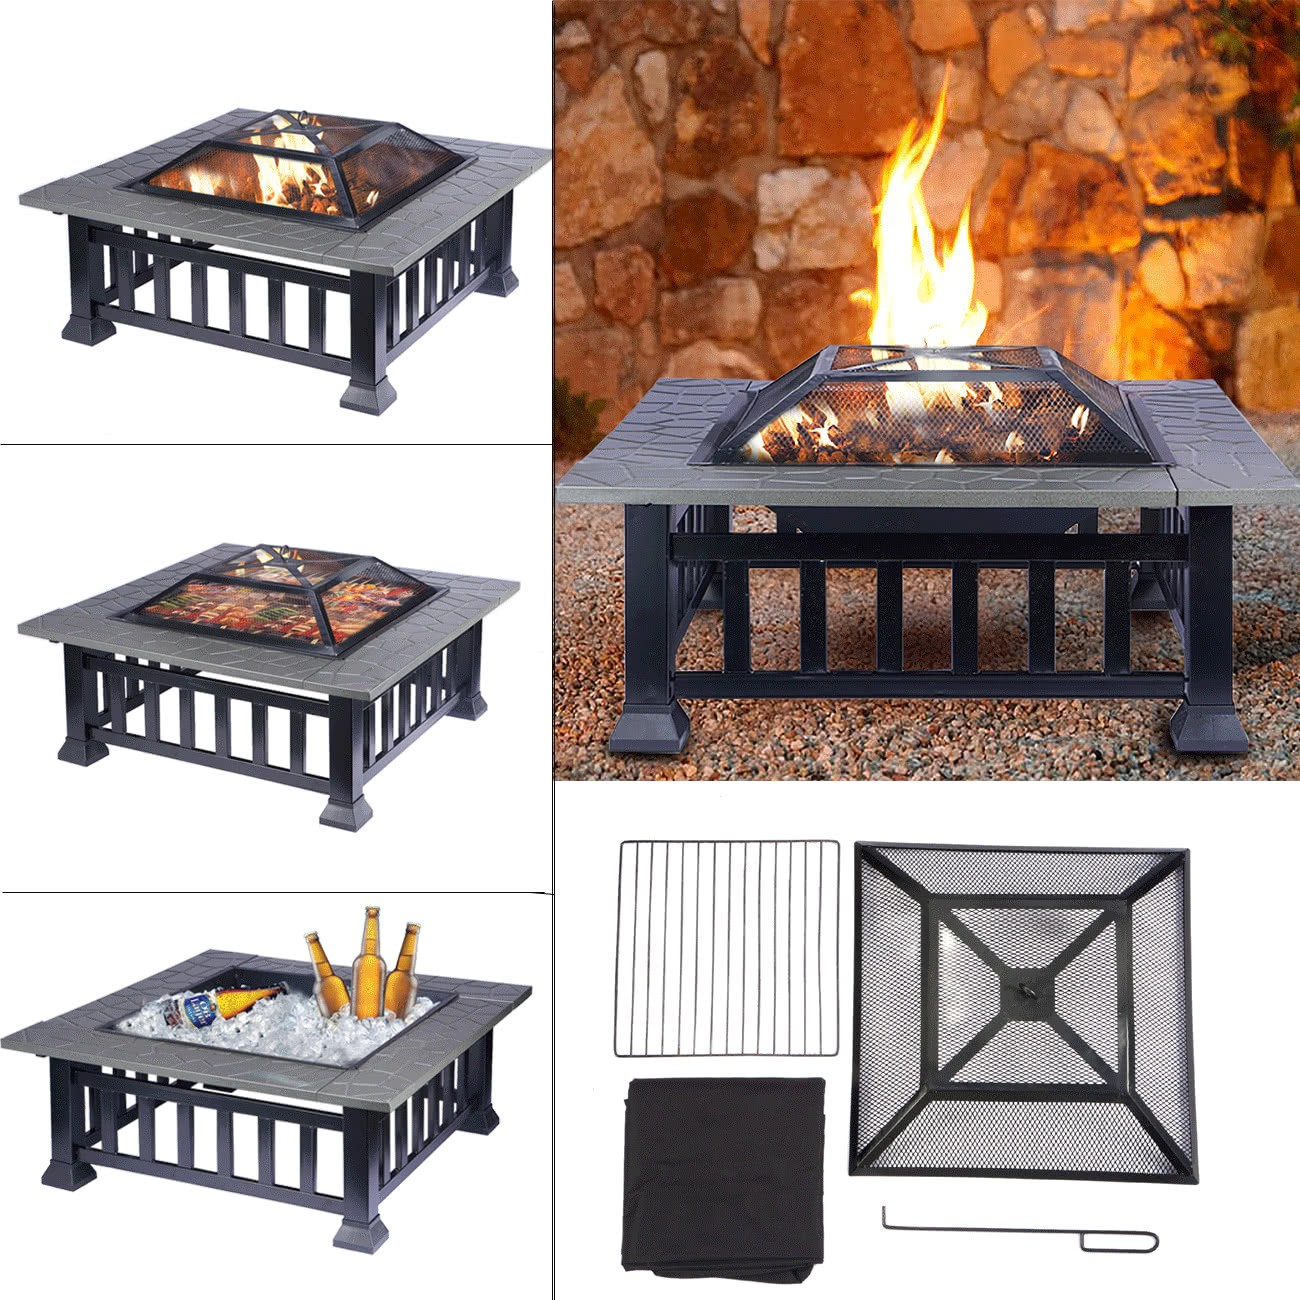 feuerschale multifunktional feuerstelle fire pit f r heizung bbq garten terrasse quadratisch. Black Bedroom Furniture Sets. Home Design Ideas